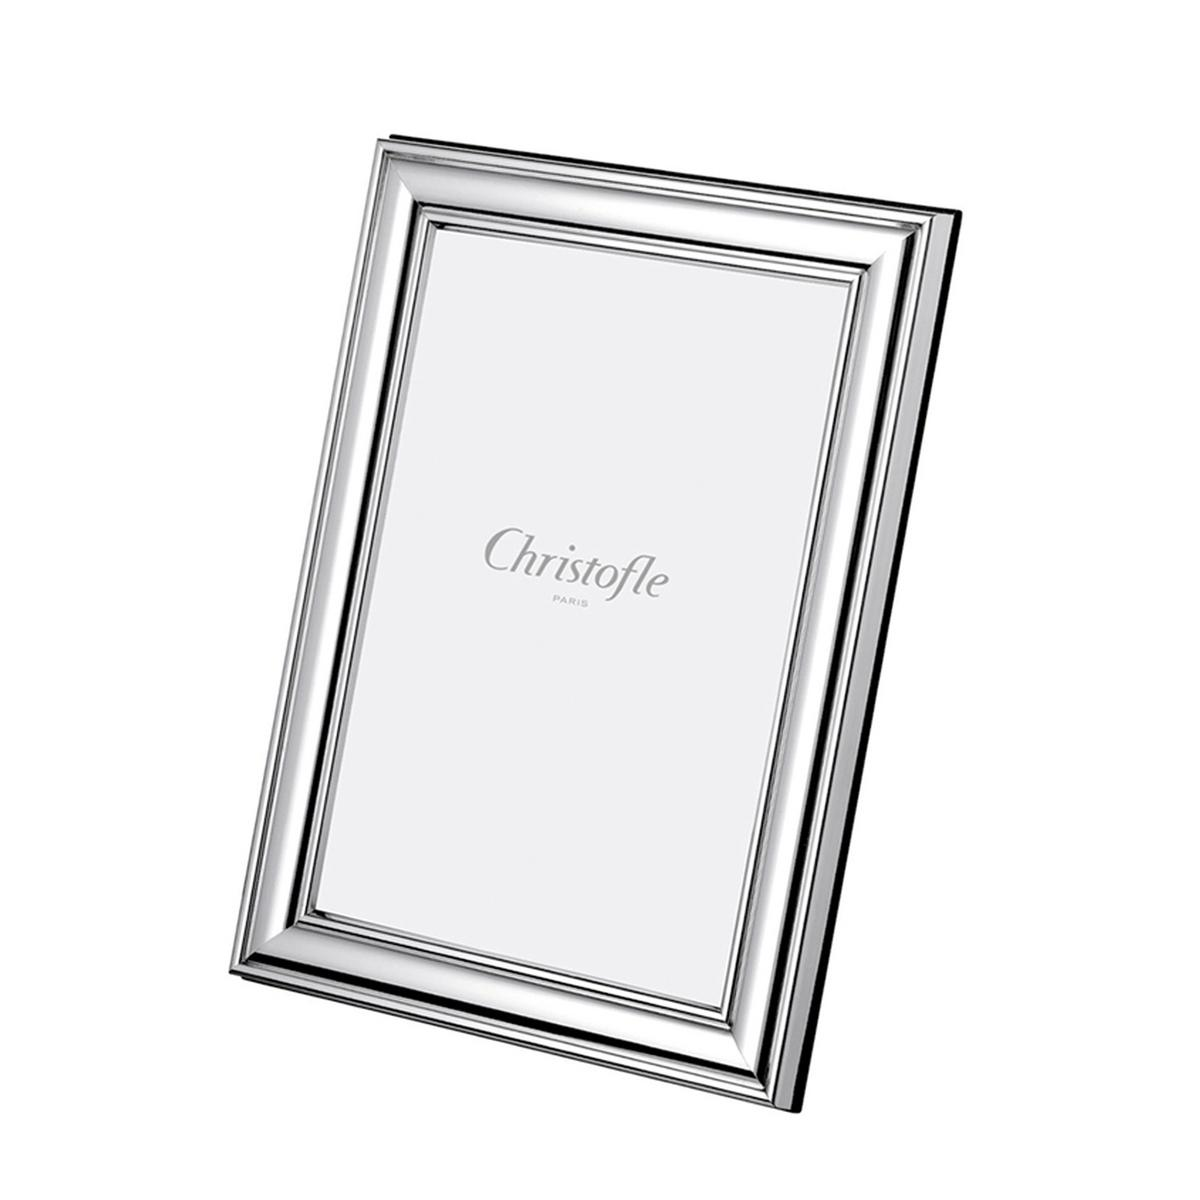 Christofle Albi Sterling Silver Picture Frame Photo Size 10 X 15 Cm